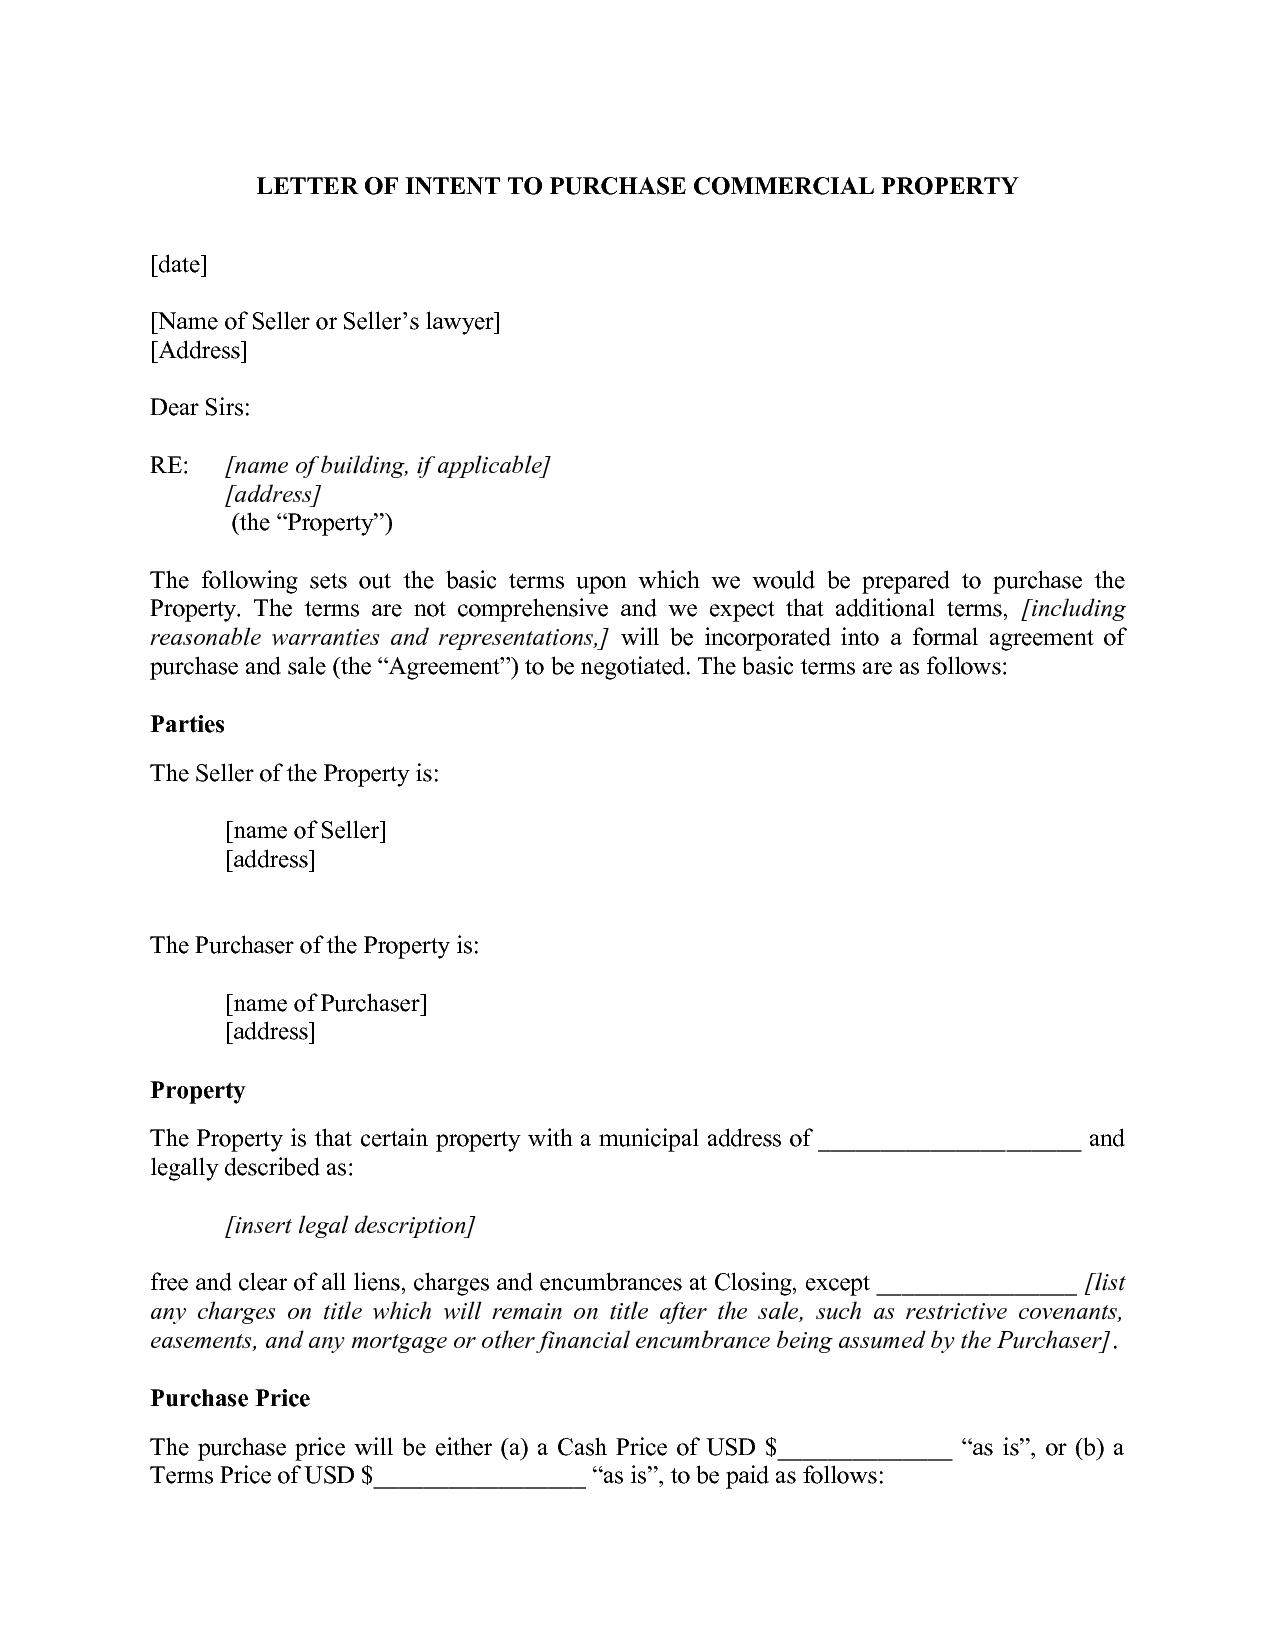 Letter Of Intent to Lease Commercial Space Template - Sample Letter Intent Jpeg to Lease Mercial Property Pdf In